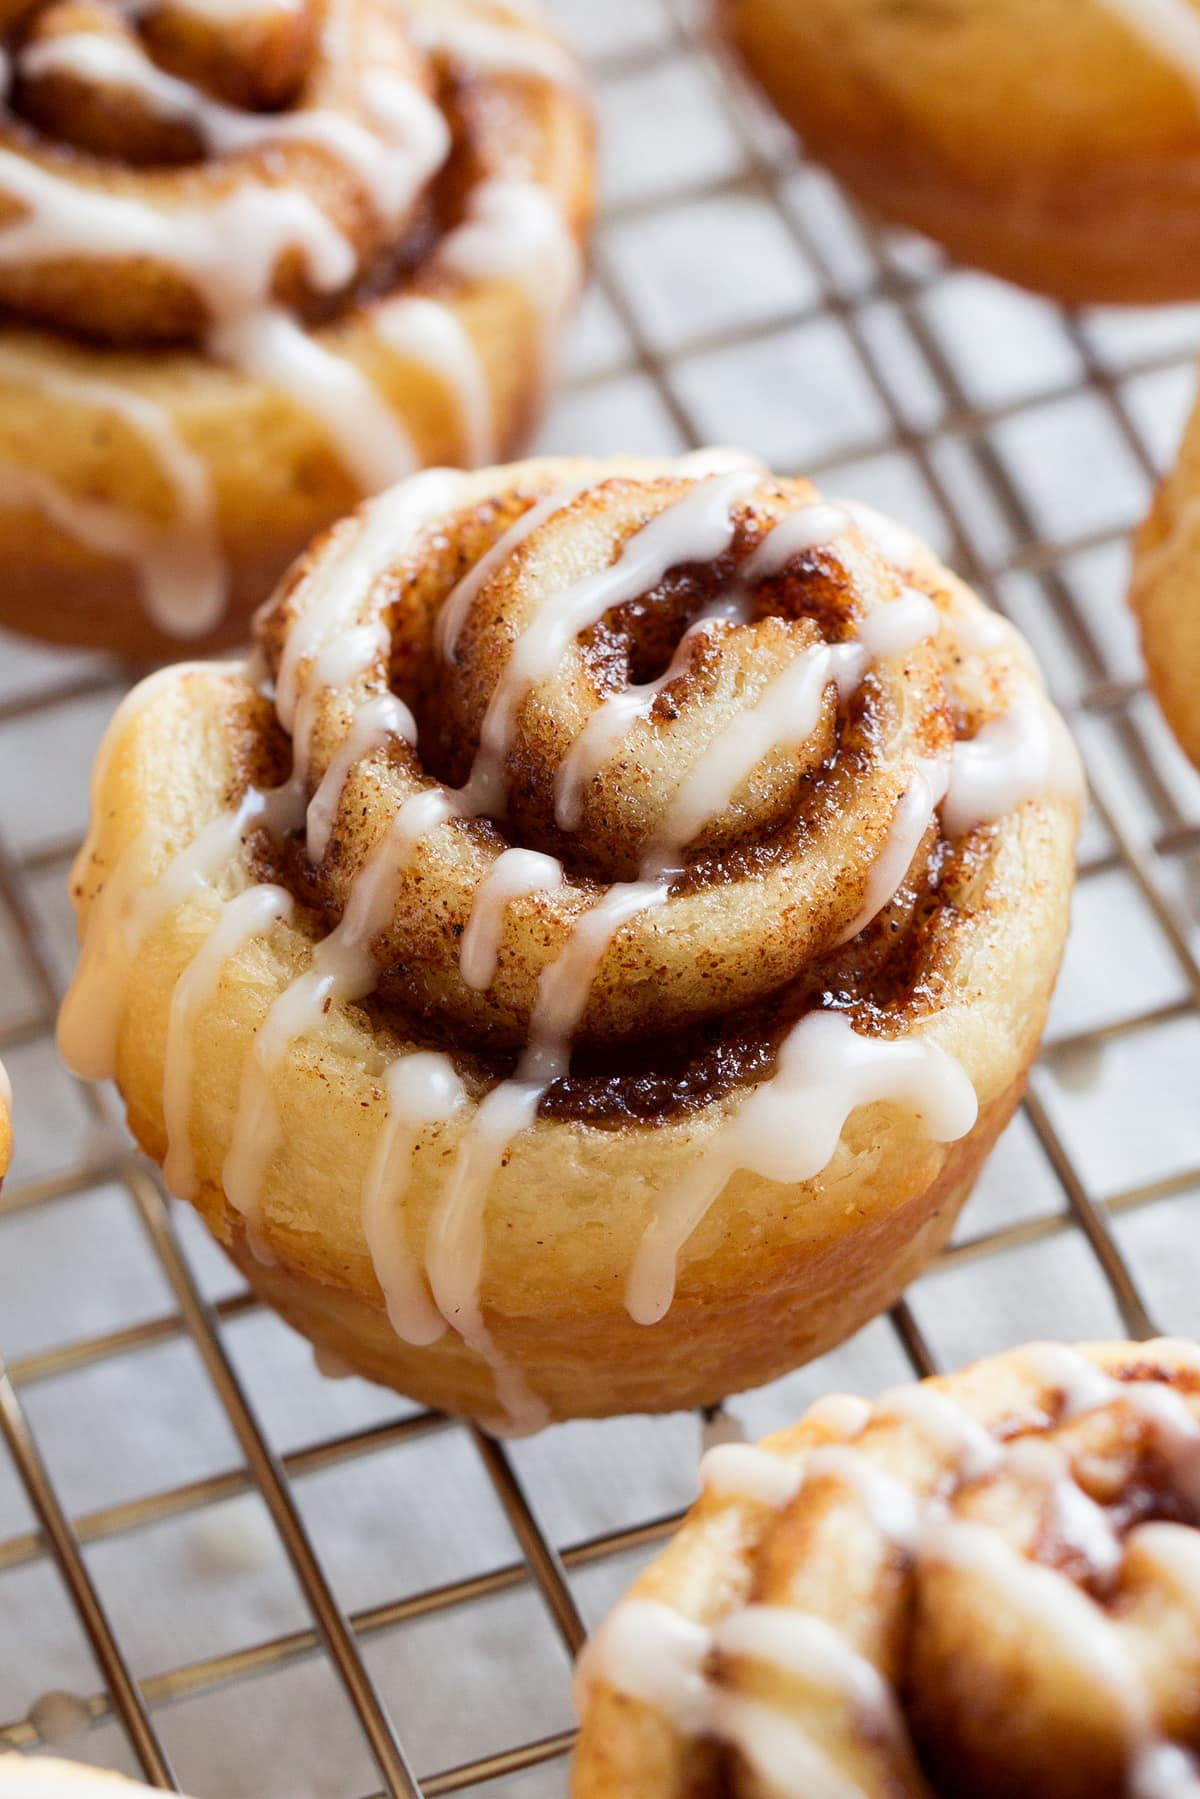 Image of mini cinnamon roll shown close up.